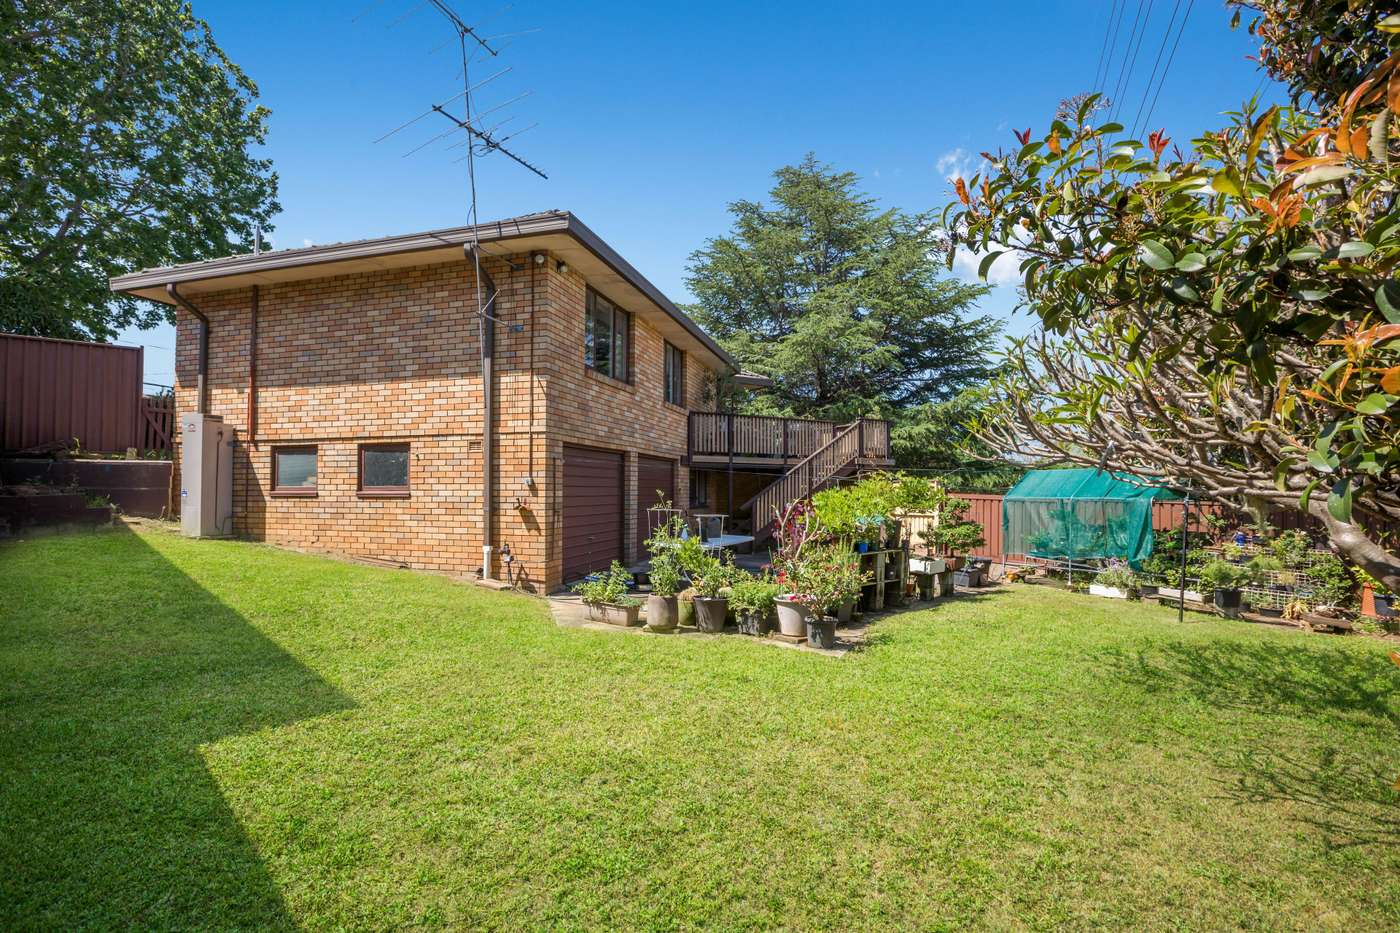 Main view of Homely house listing, 6 Reilleys Road, Winston Hills, NSW 2153